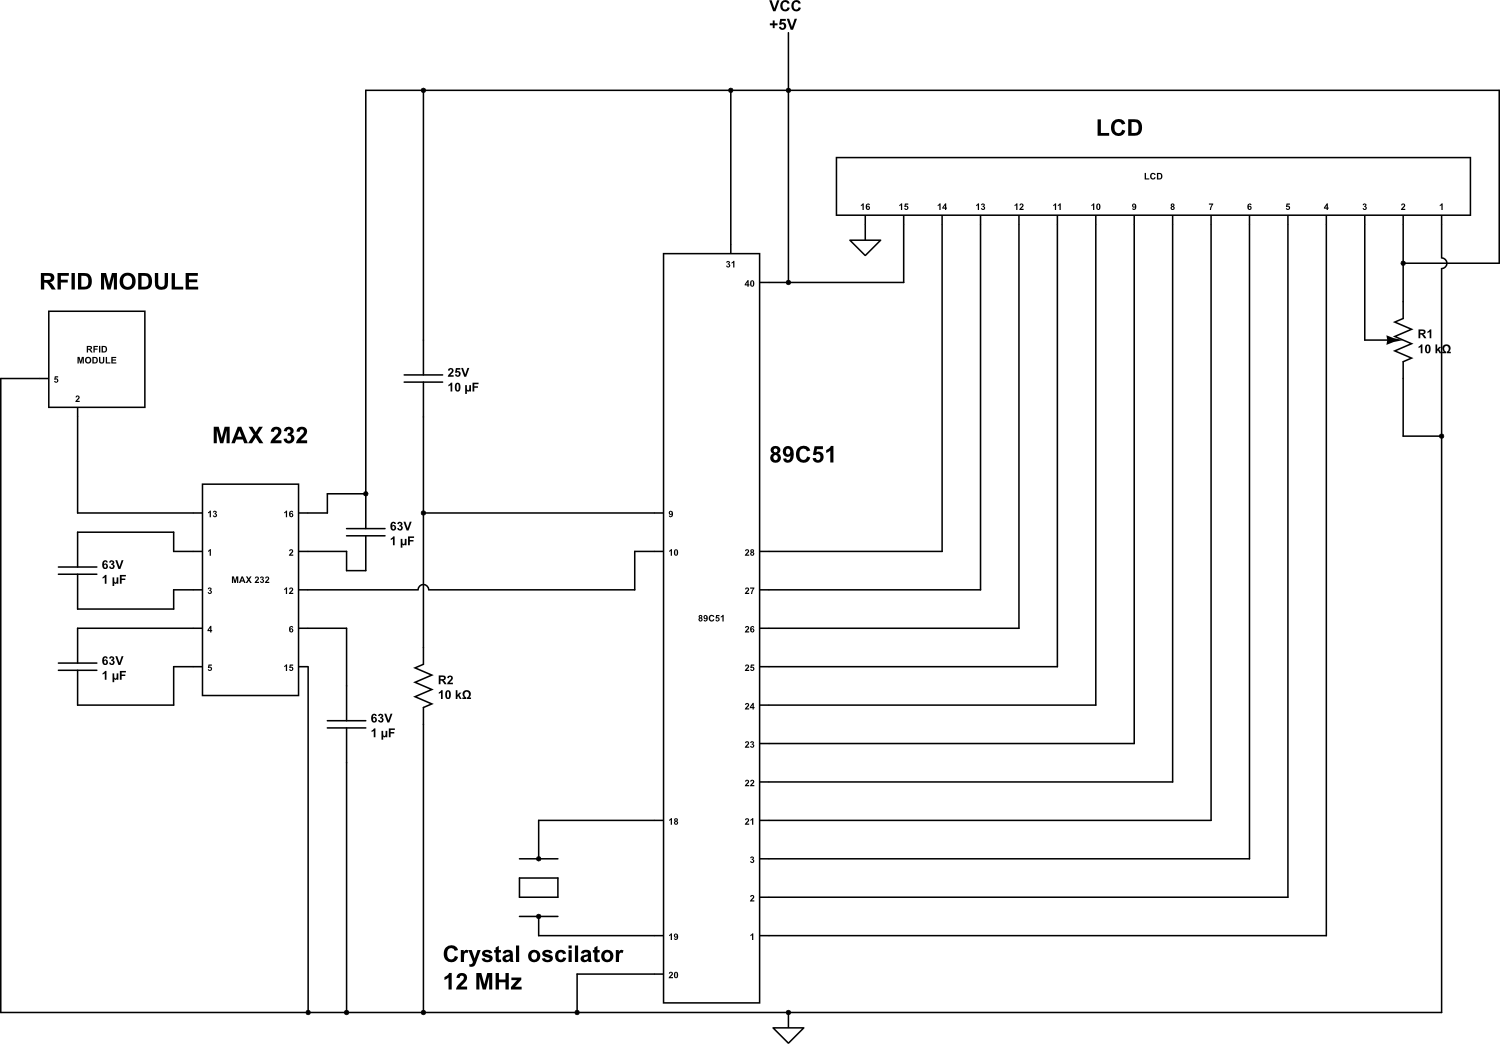 Results Page 81 About Electronic Canary Searching Circuits At Lm1036 Volume Controller Equalizer Project How To Interface Rfid With 8051